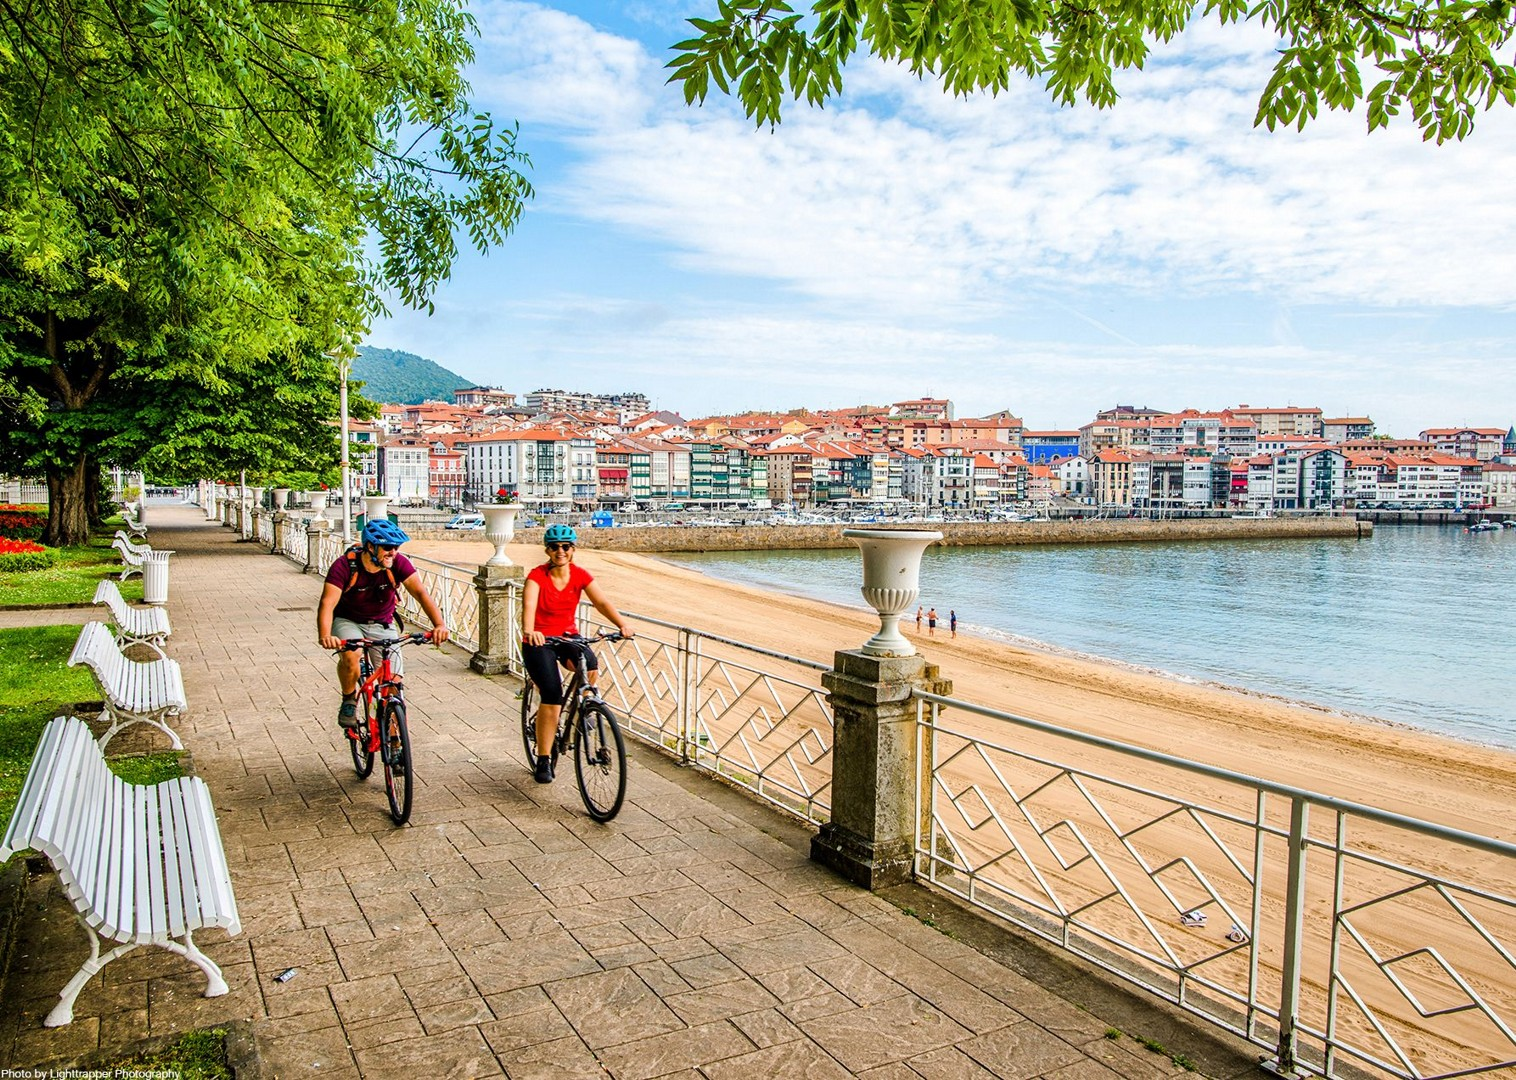 lekeitio-leisure-cycling-holiday-in-spain-skedaddle-trip.jpg - NEW! Spain - Bilbao to San Sebastian - Leisure Cycling